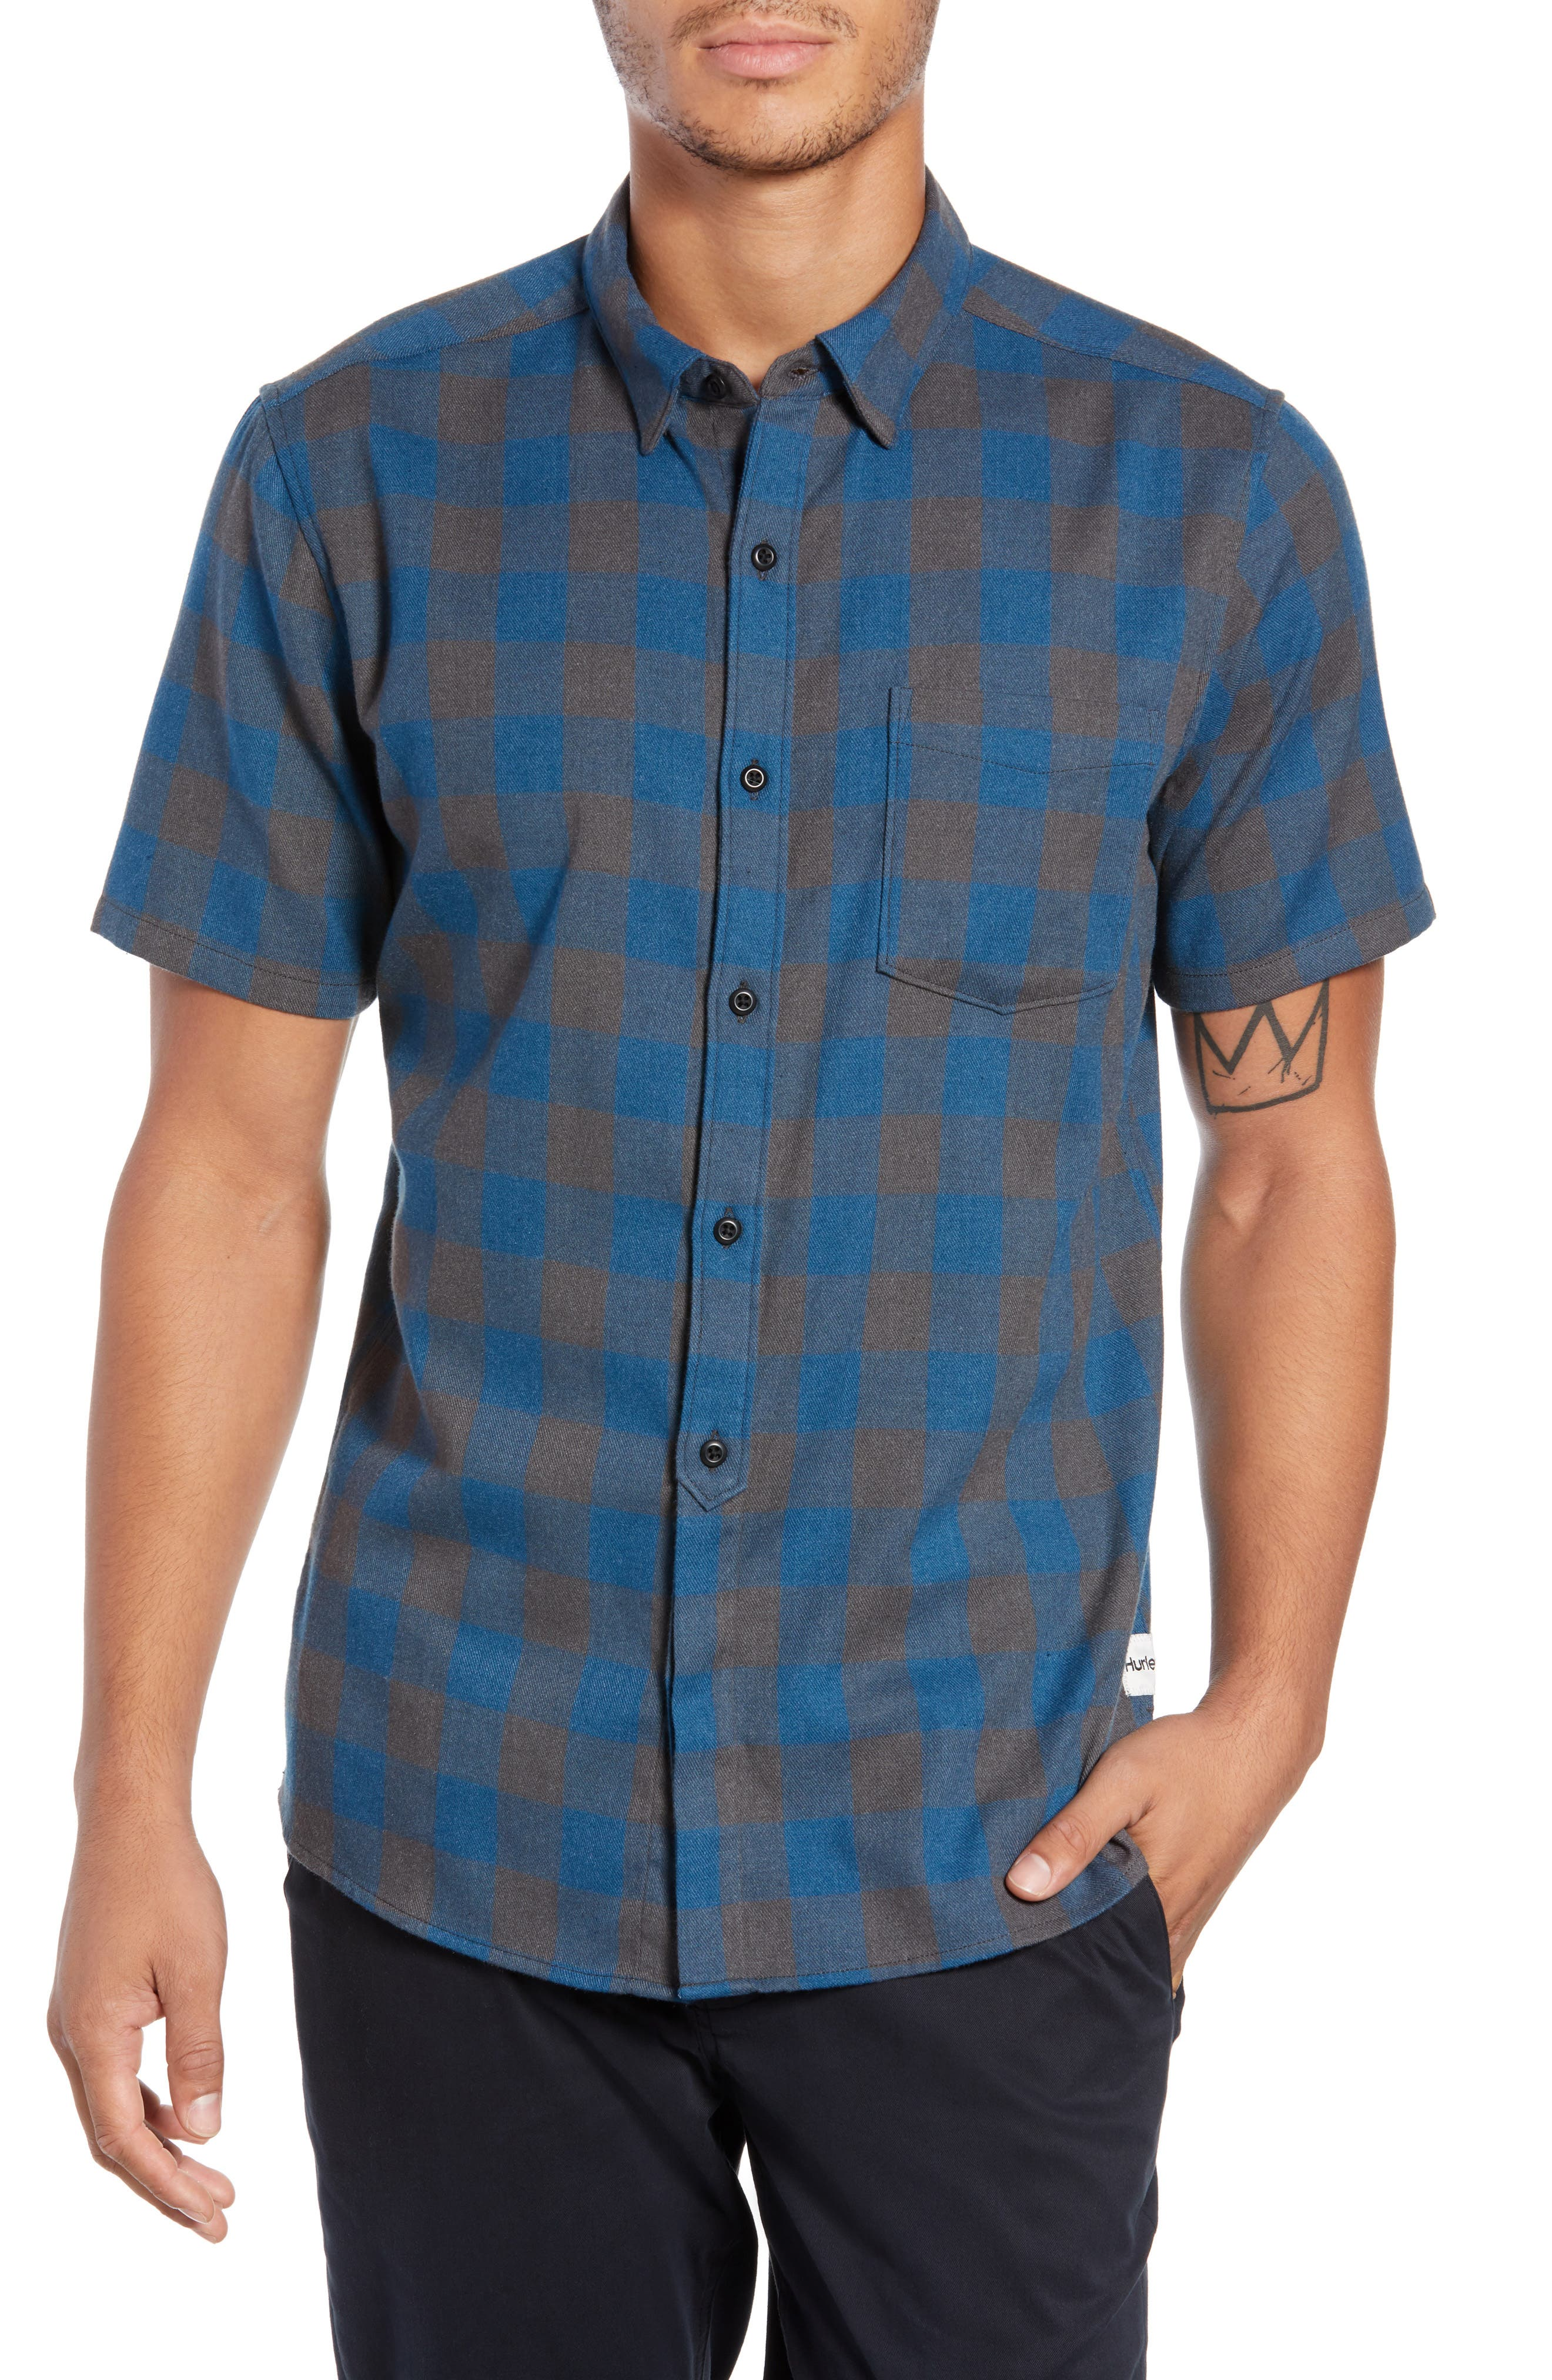 Bison Check Twill Woven Shirt,                         Main,                         color, BLUE FORCE HEATHER